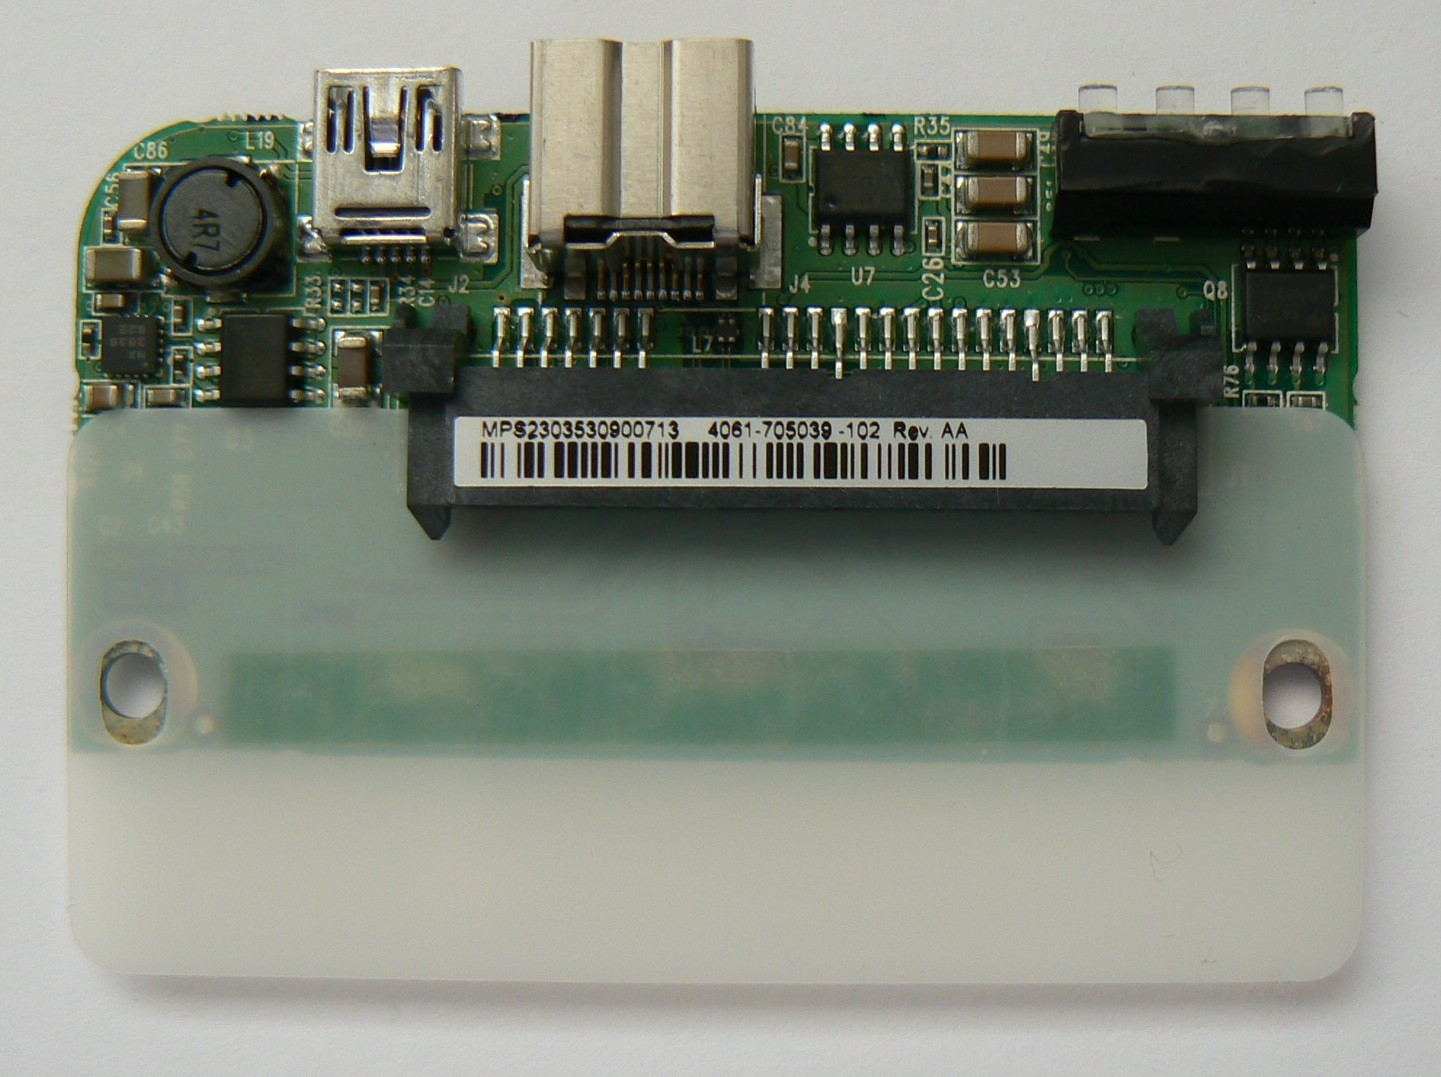 4061-705039-102 Rev AA WD Controller Board My Passport Studio 320GB/500GB